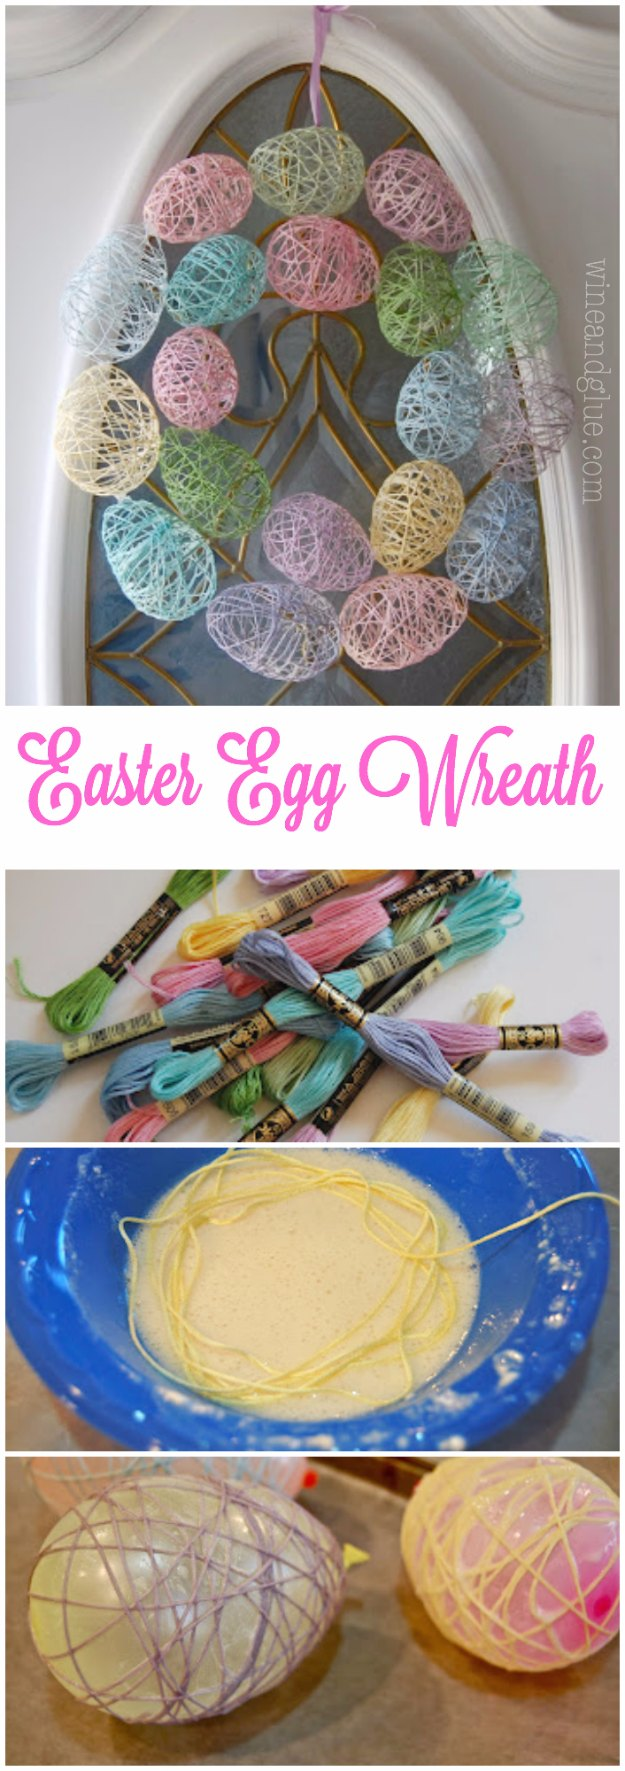 48 DIY Easter Decorations